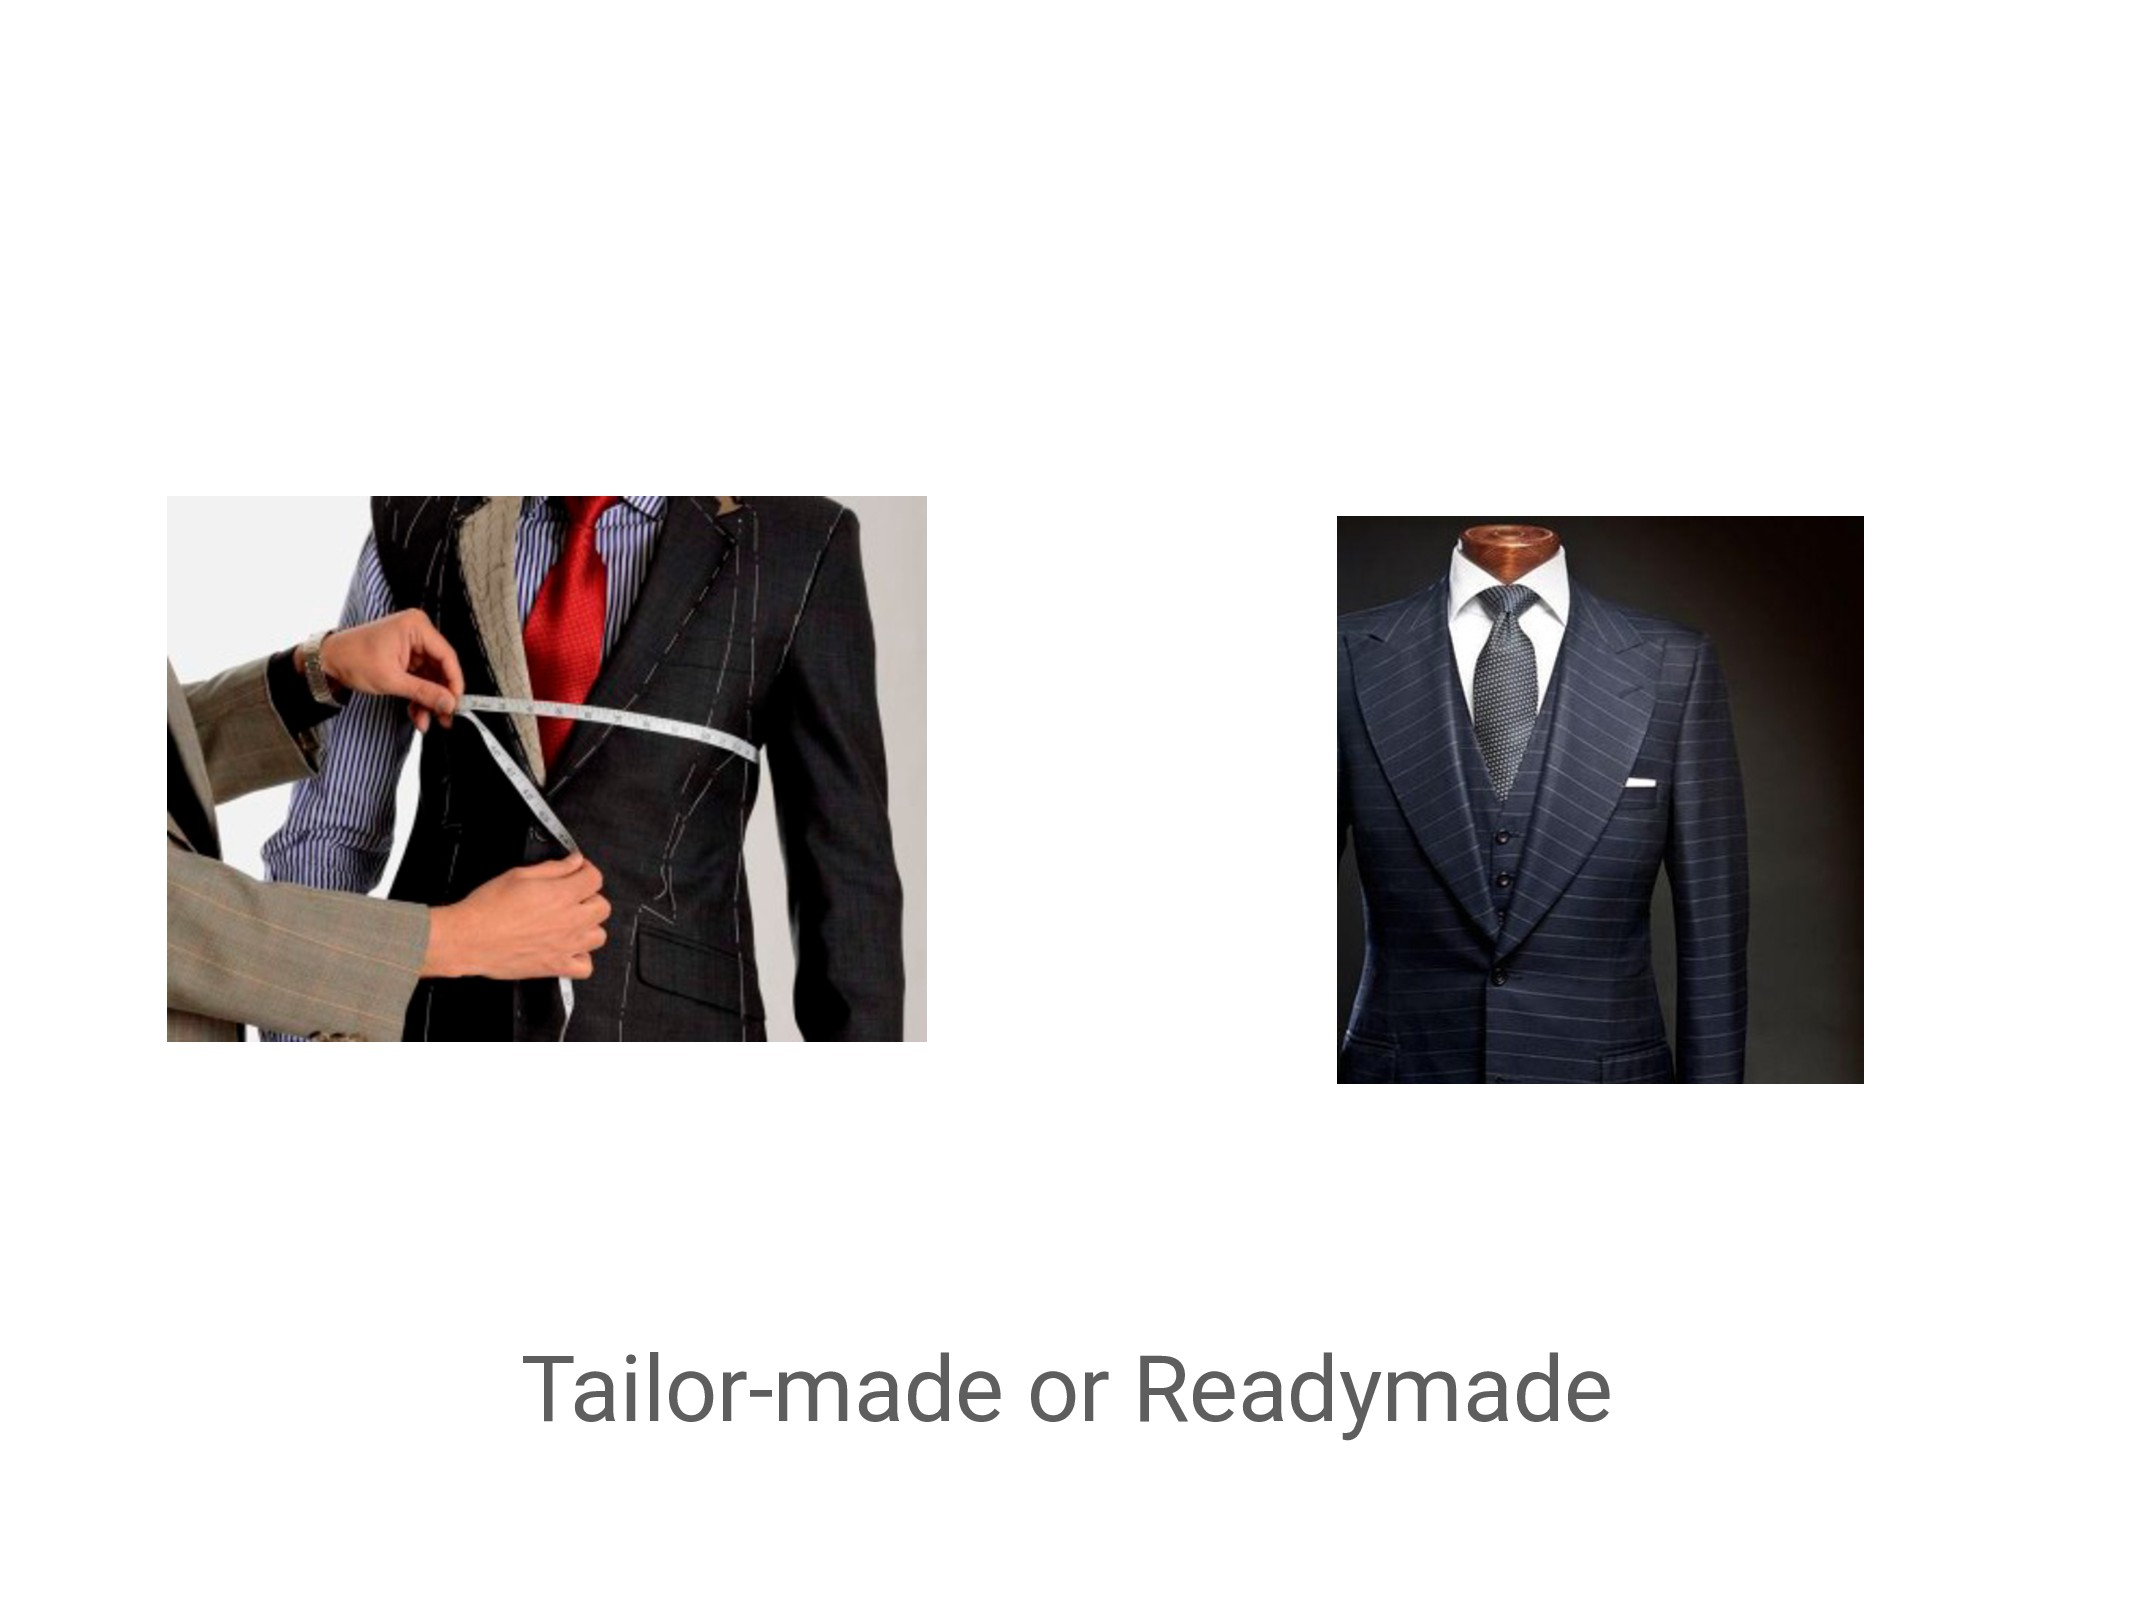 Tailor-made or Readymade